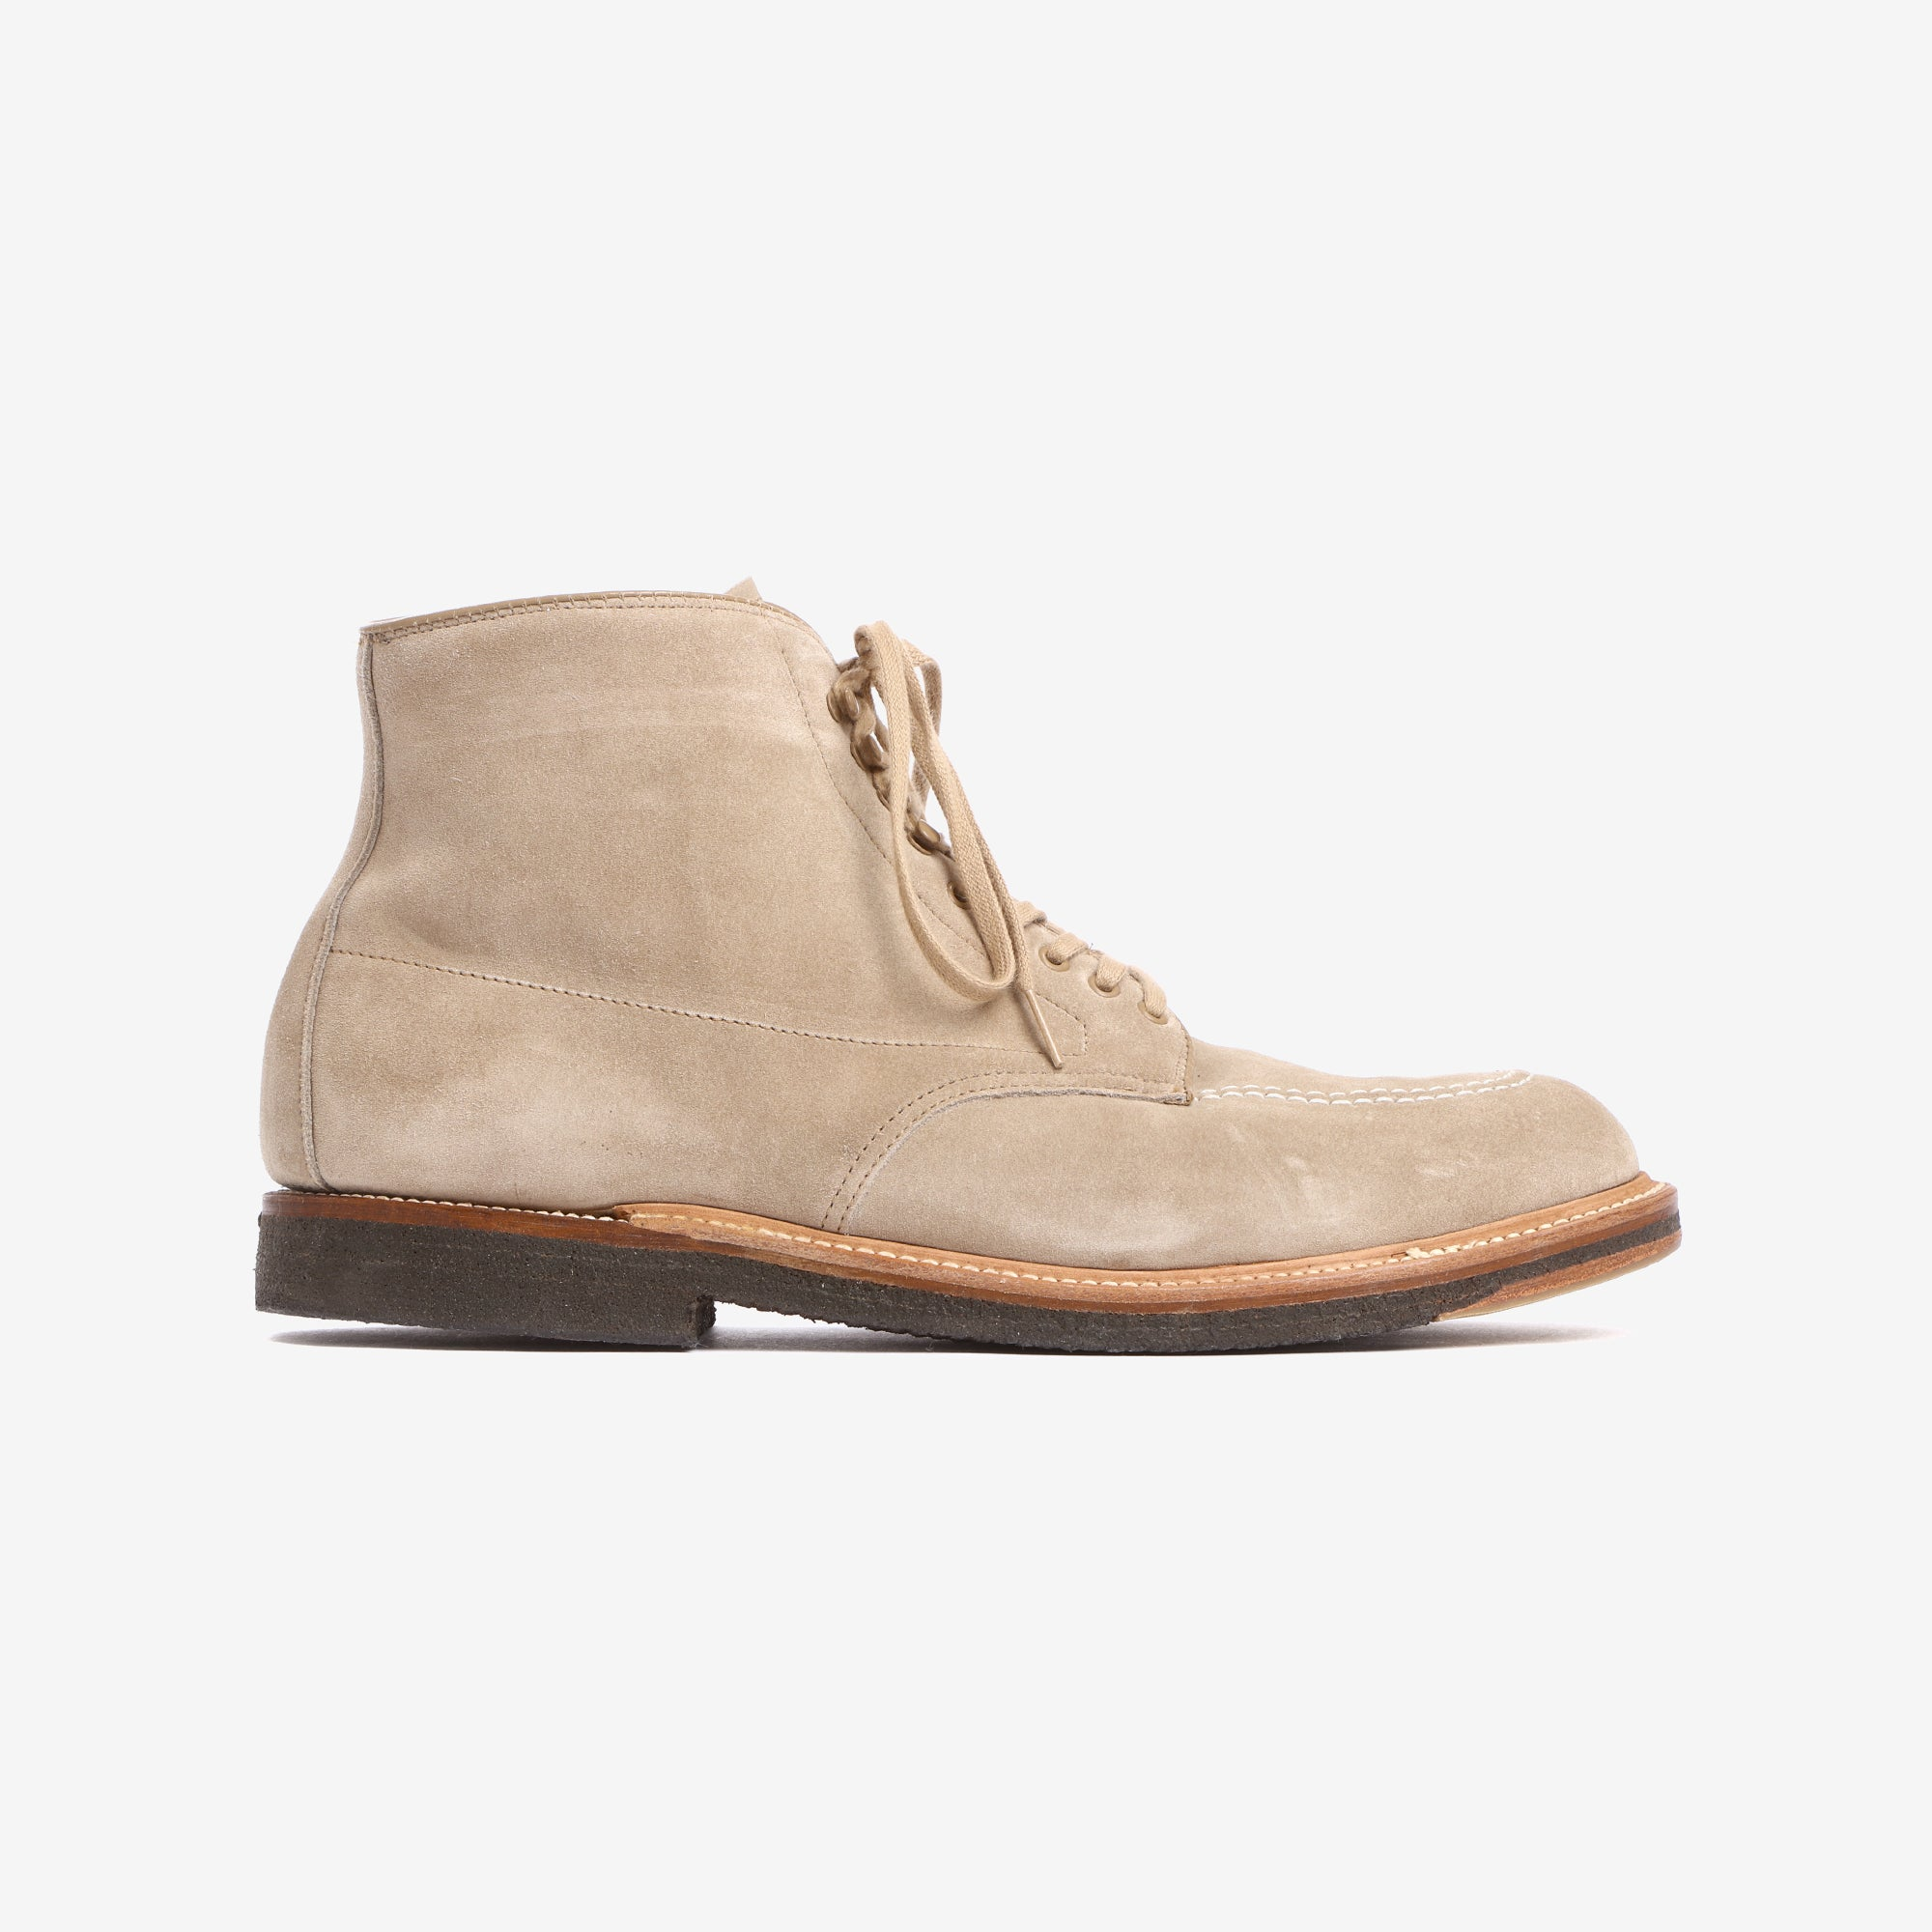 Suede Indy Boots